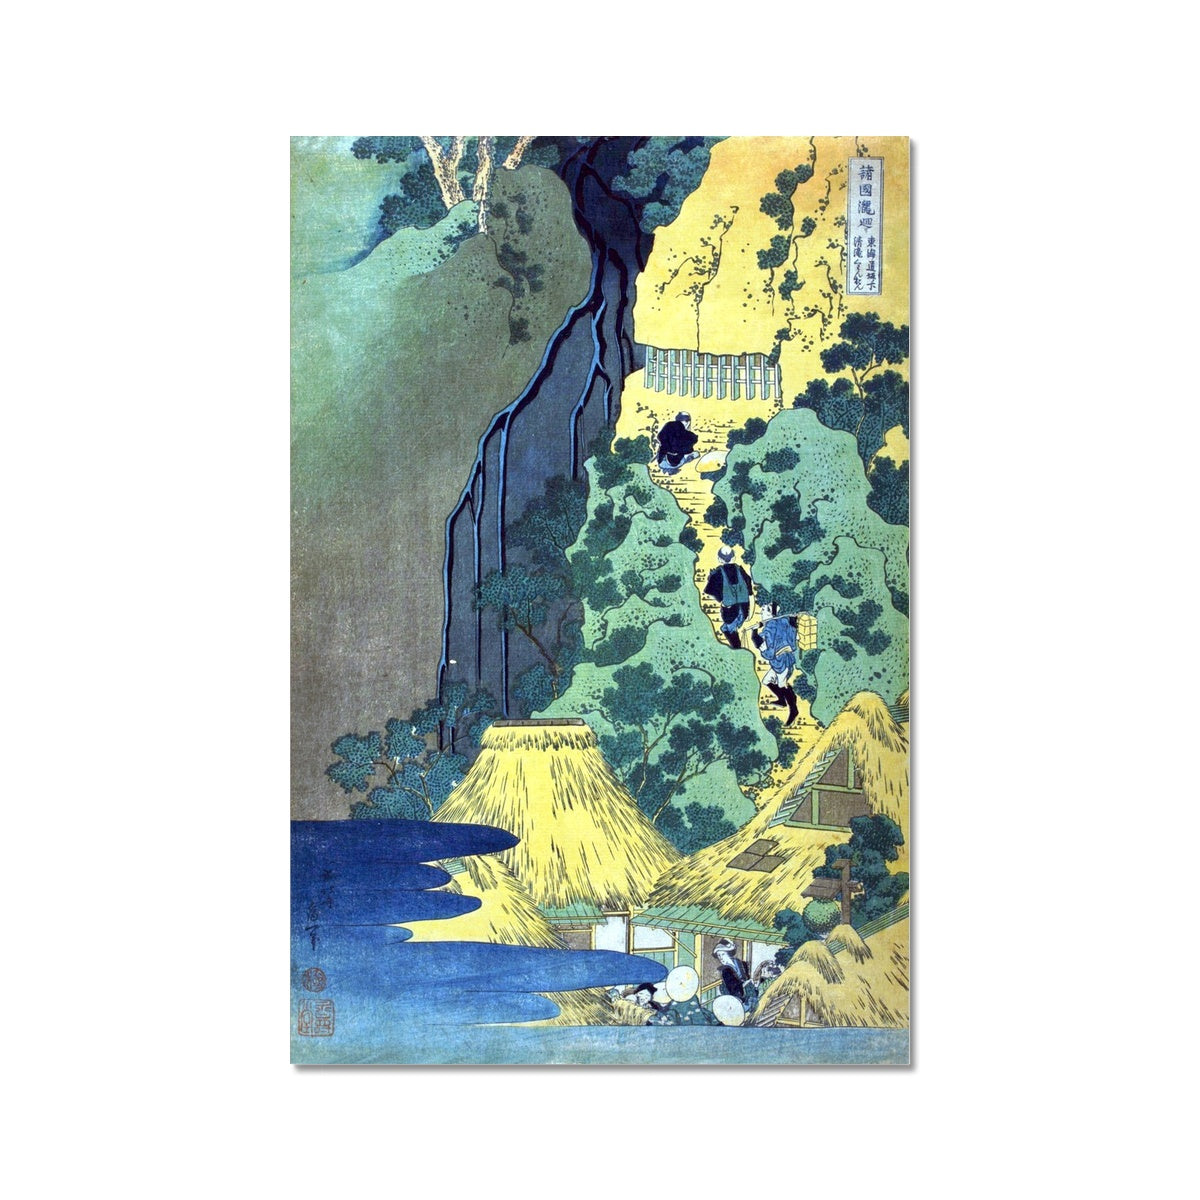 Kiyotaki Kannon Waterfall at Sakanoshita on the Tōkaidō - Fine Art Print